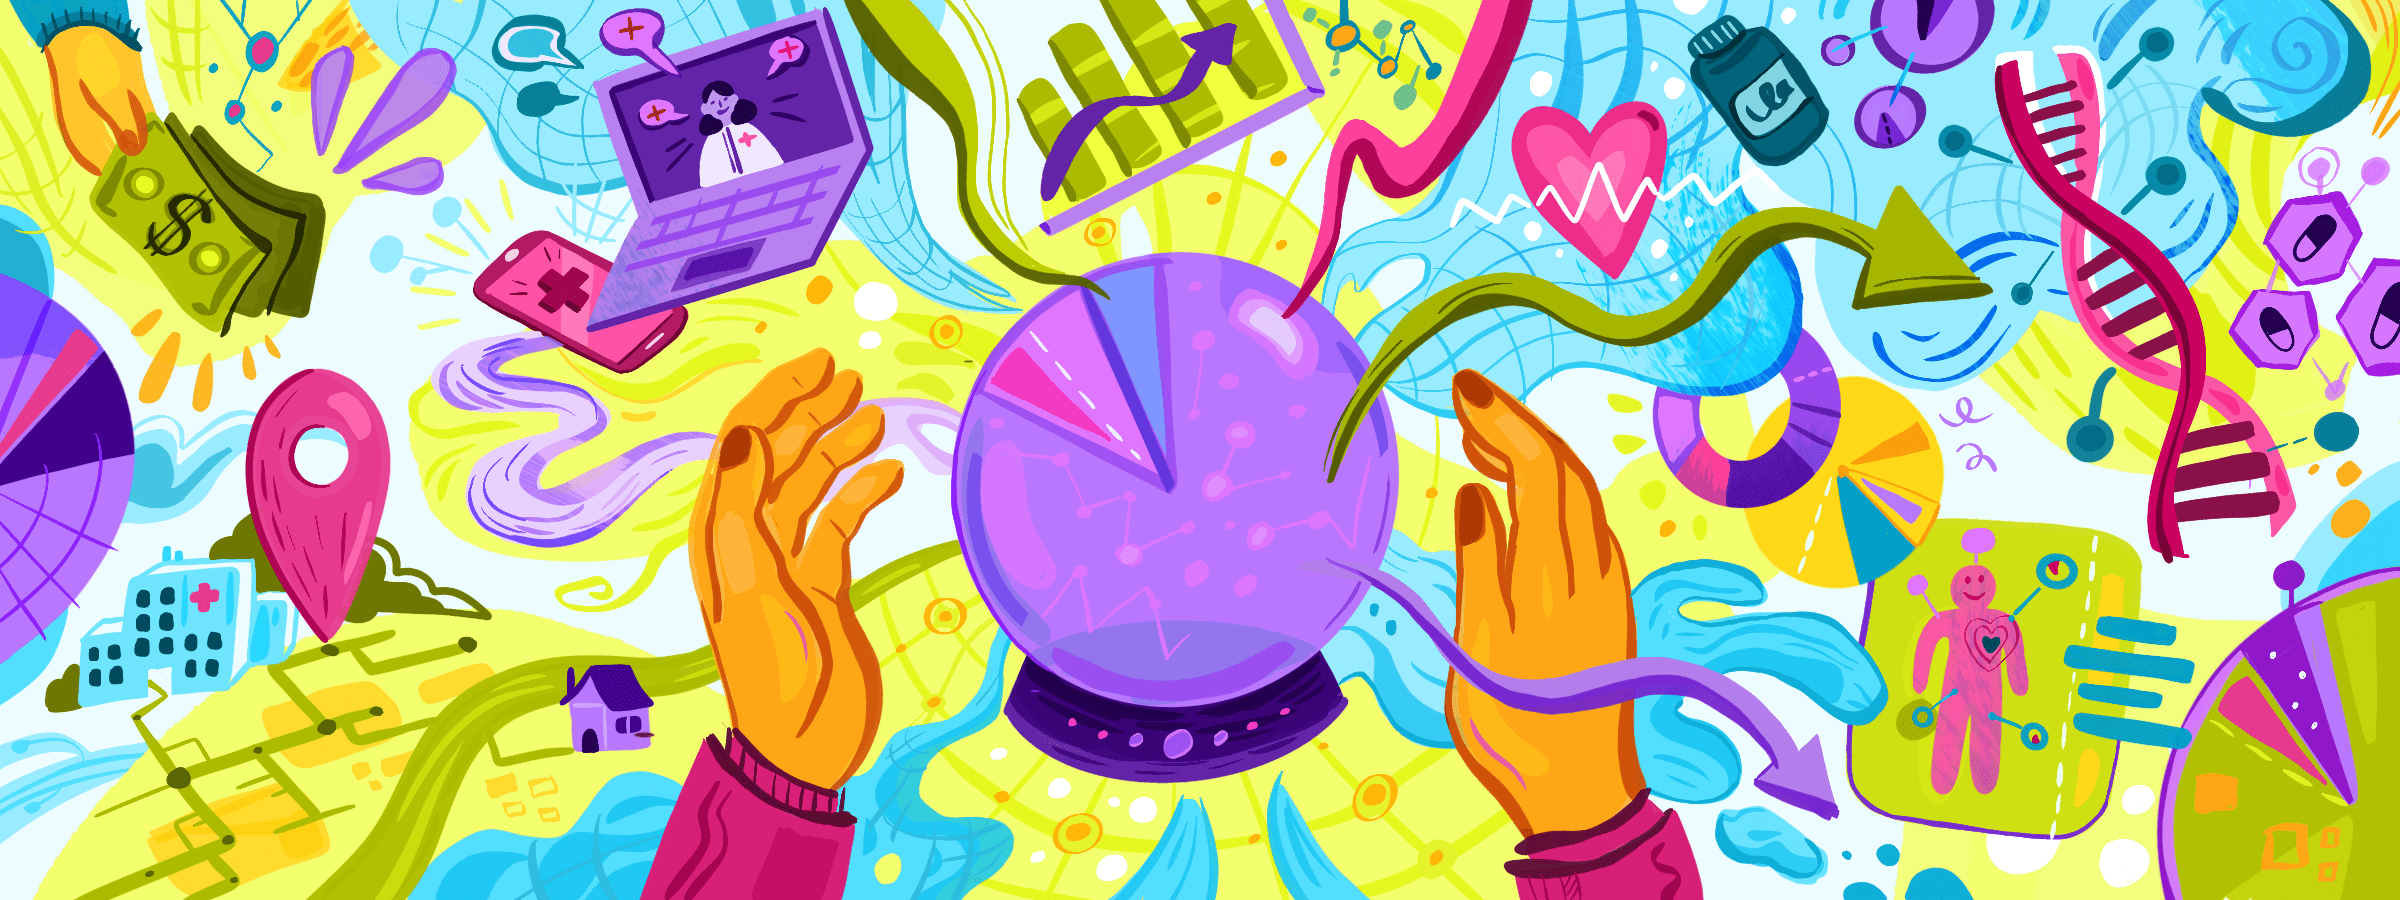 Drawing of a psychic's crystal ball.